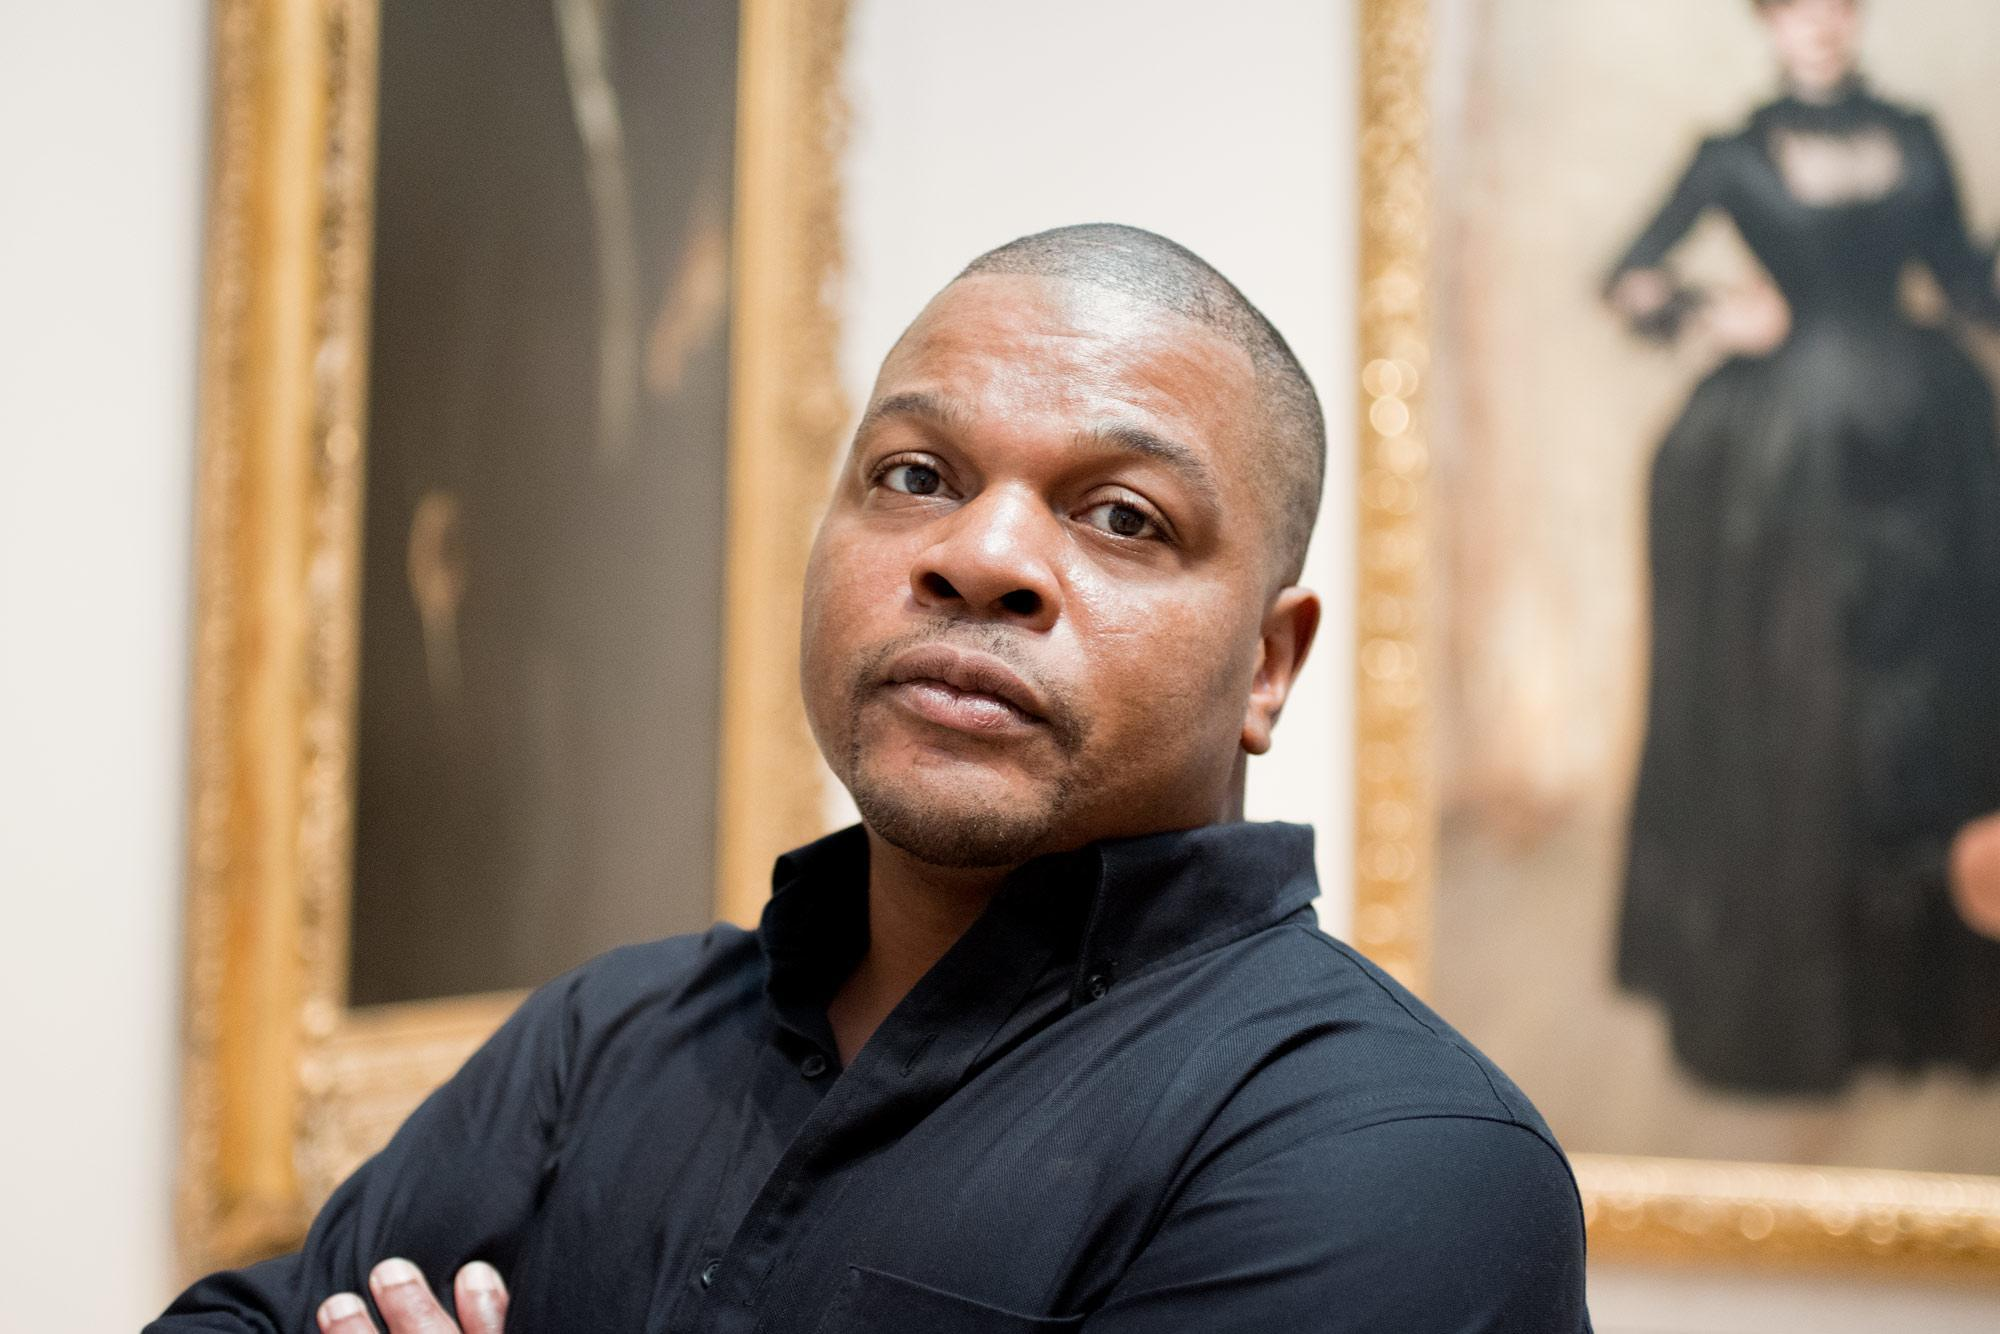 Kehinde Wiley: Making History with Large-Scale, Vibrant Portraits